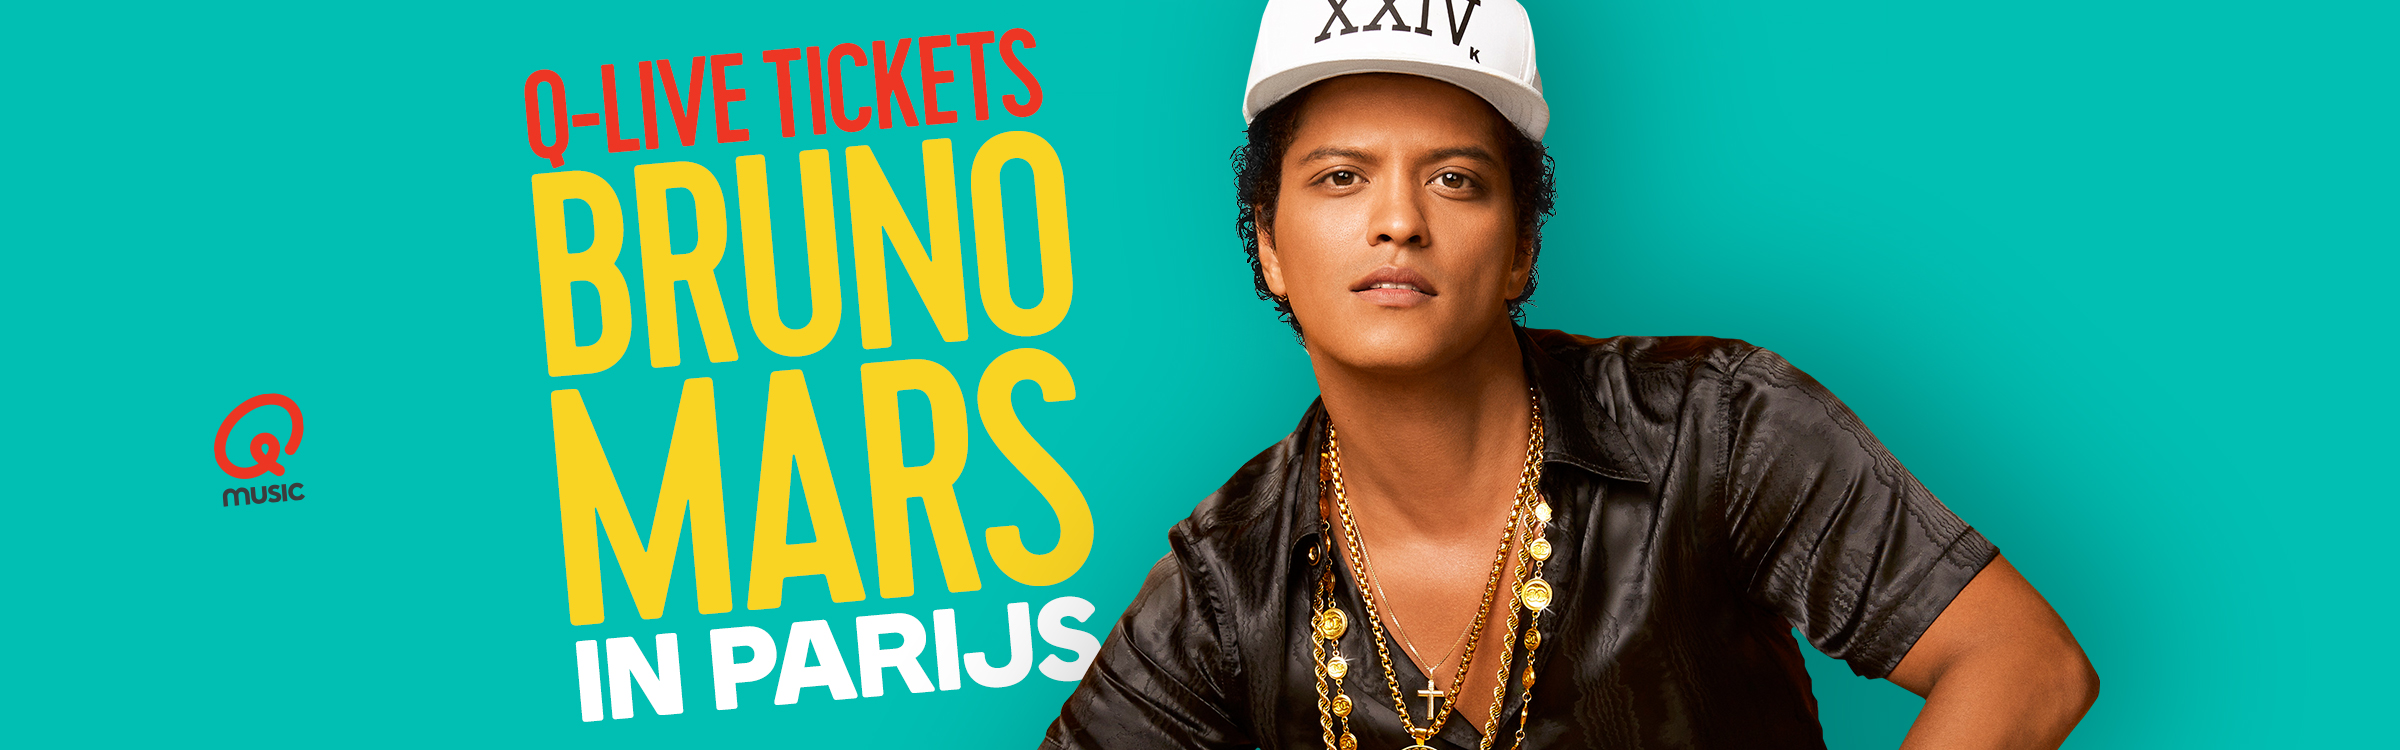 Qmusic actionheader bruno